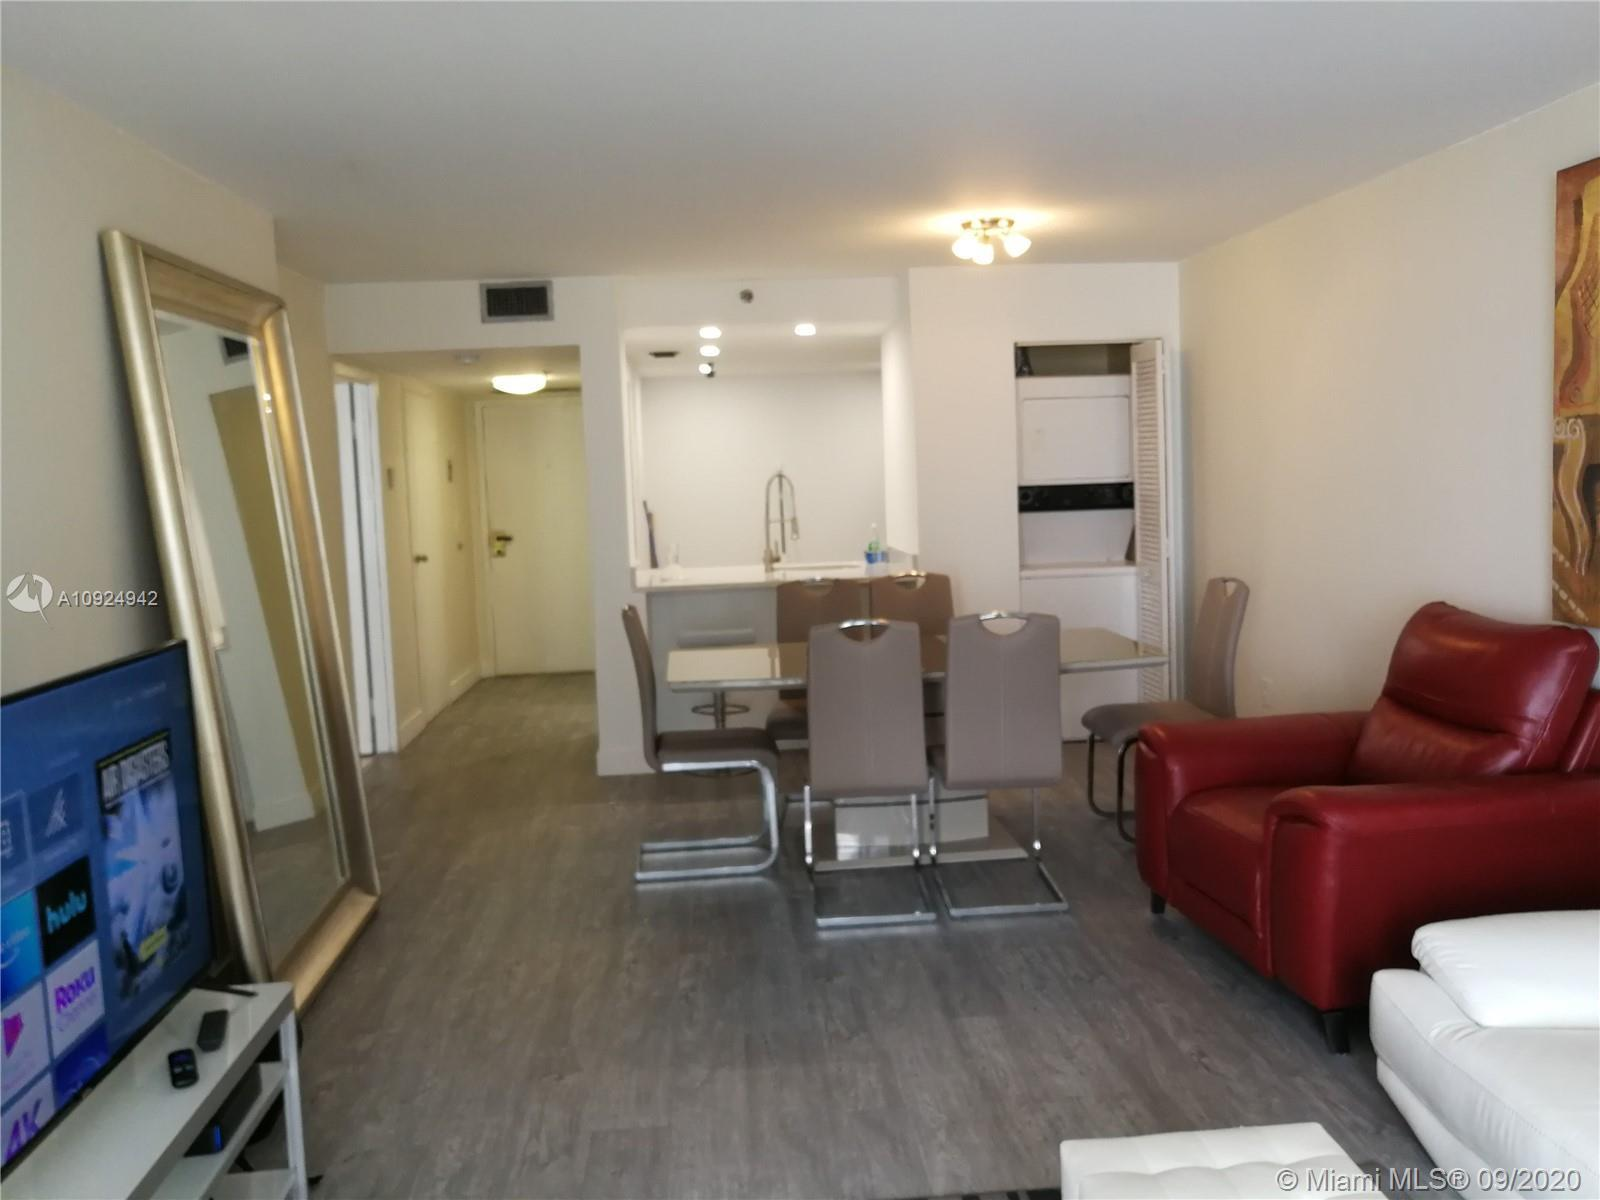 Recently remodeled Bayfront  1bedroom 1 and half baths. New kitchen and appliances,Large apt with pl